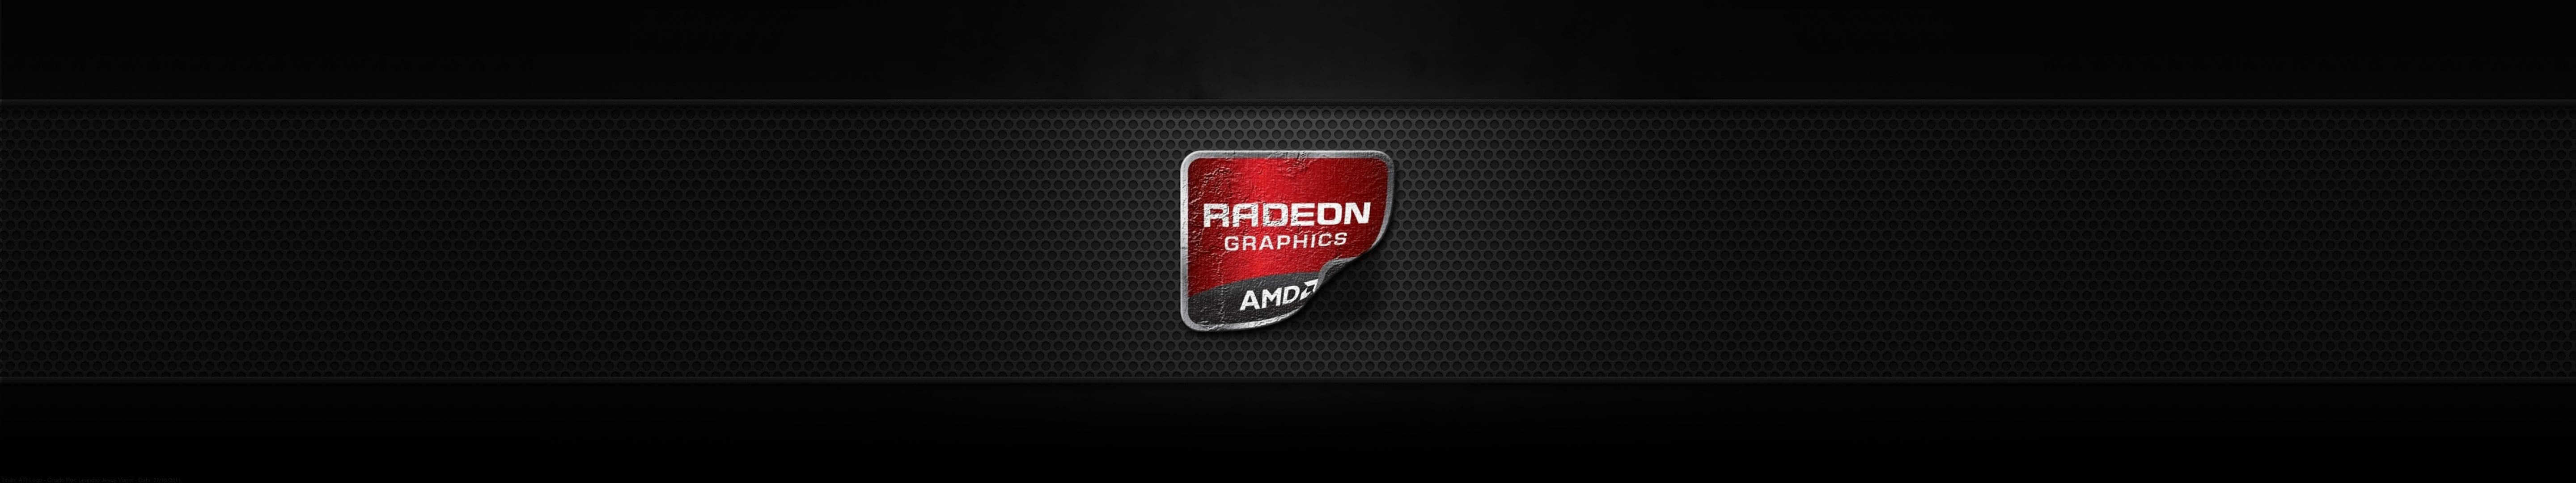 radeon graphics sticker triple monitor wallpaper